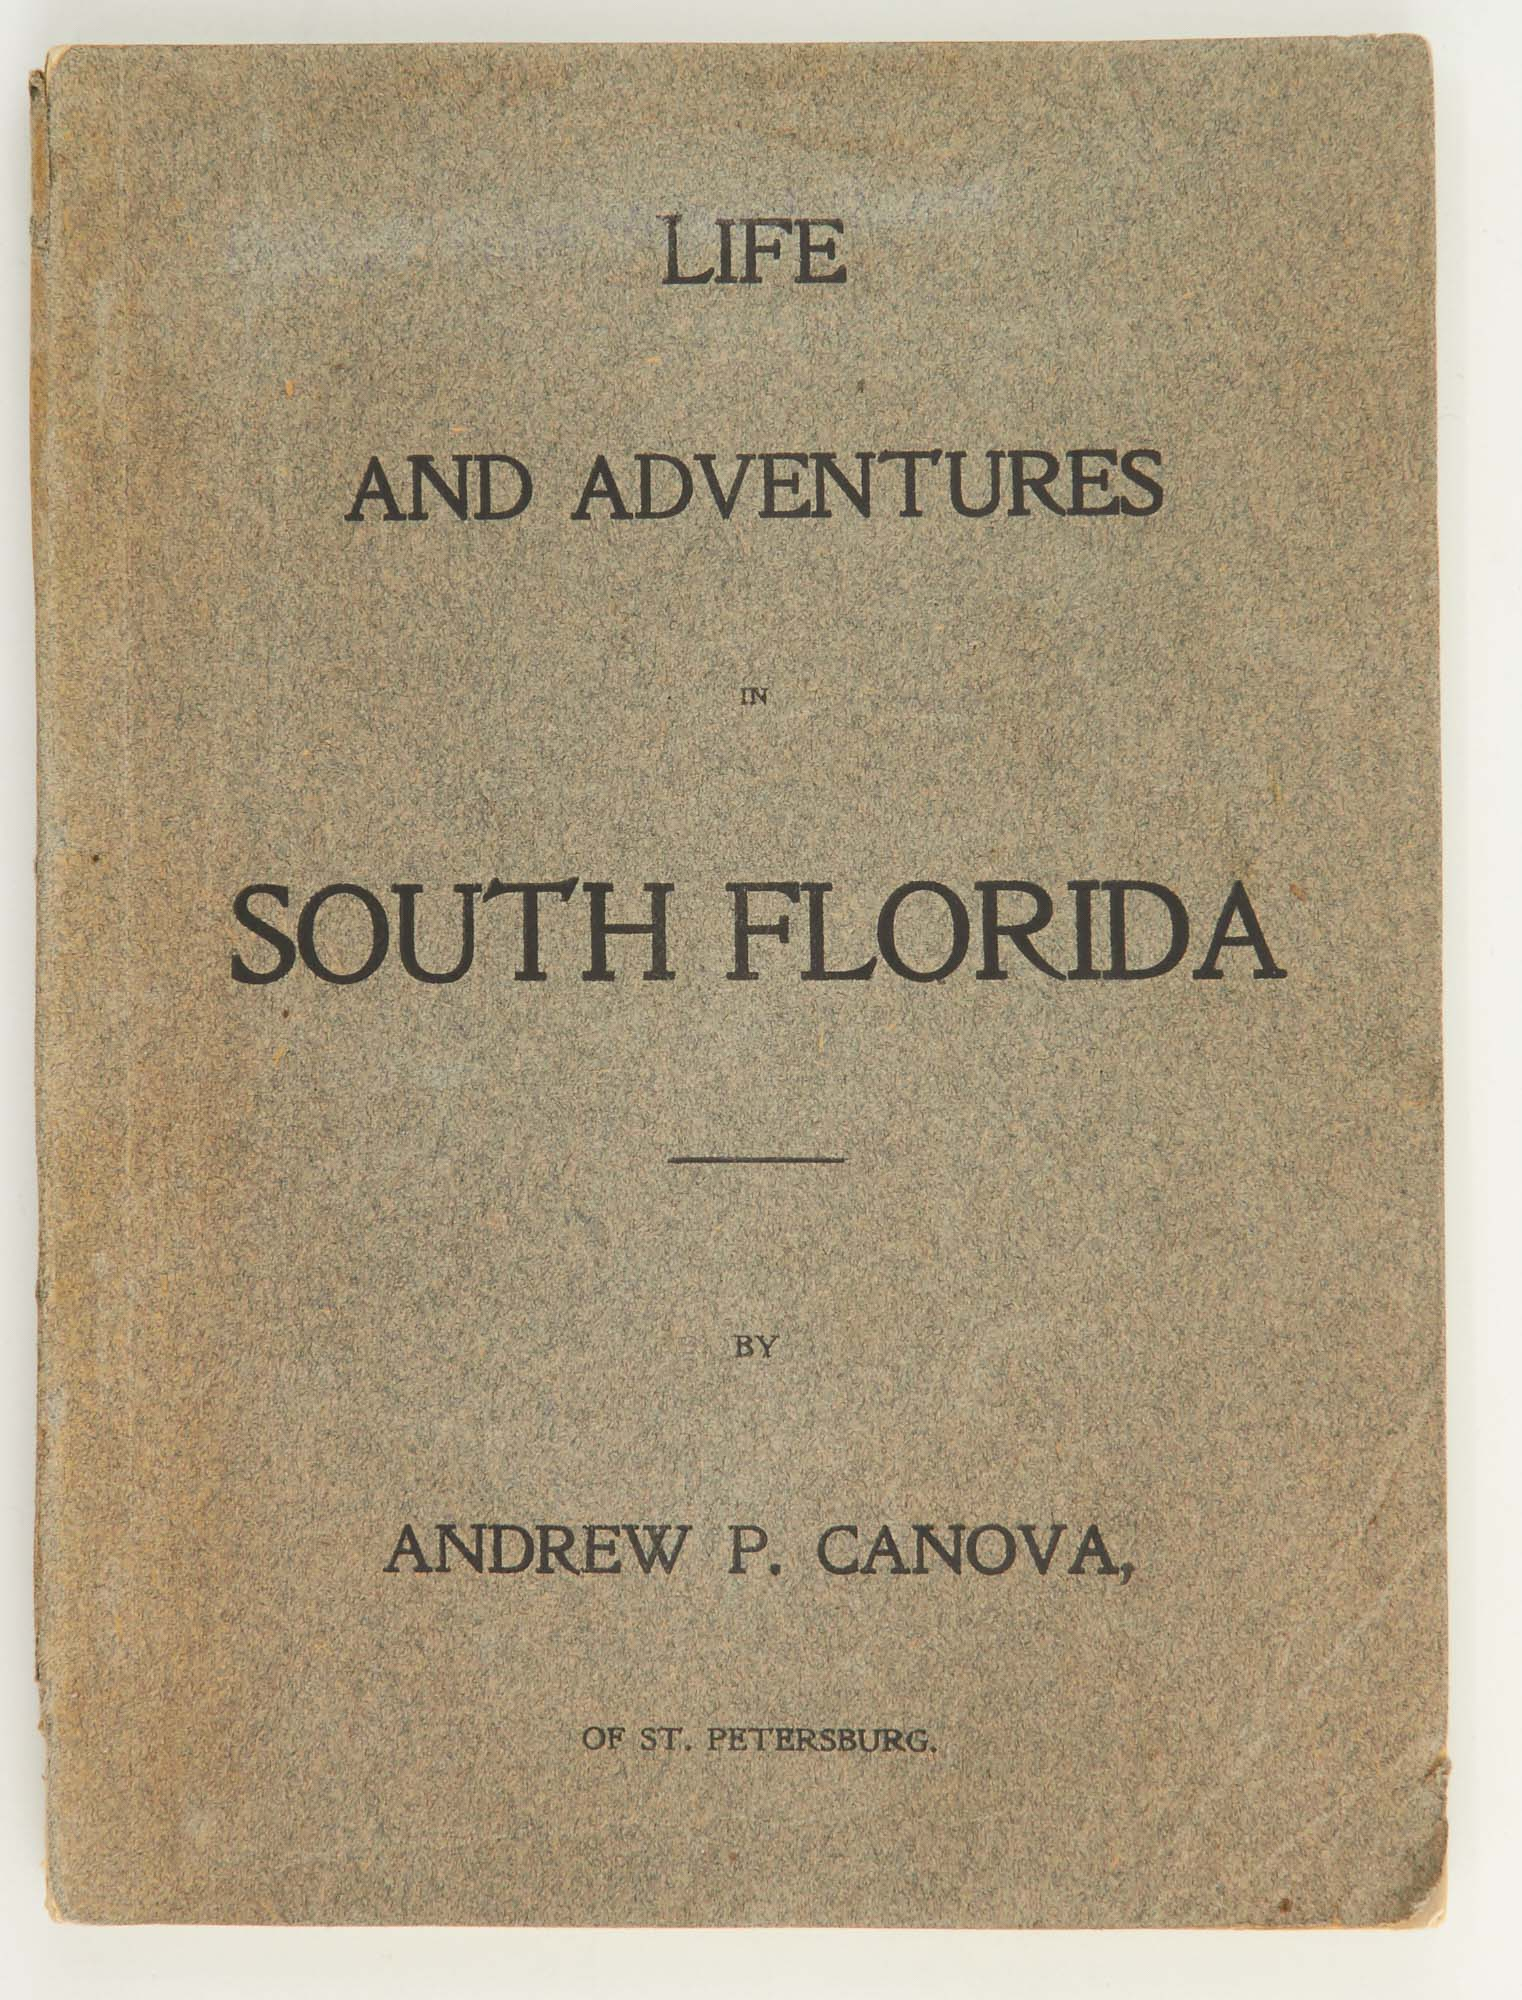 Lot image - [FLORIDA]  CANOVA, ANDREW P. Life and Adventures in South Florida.